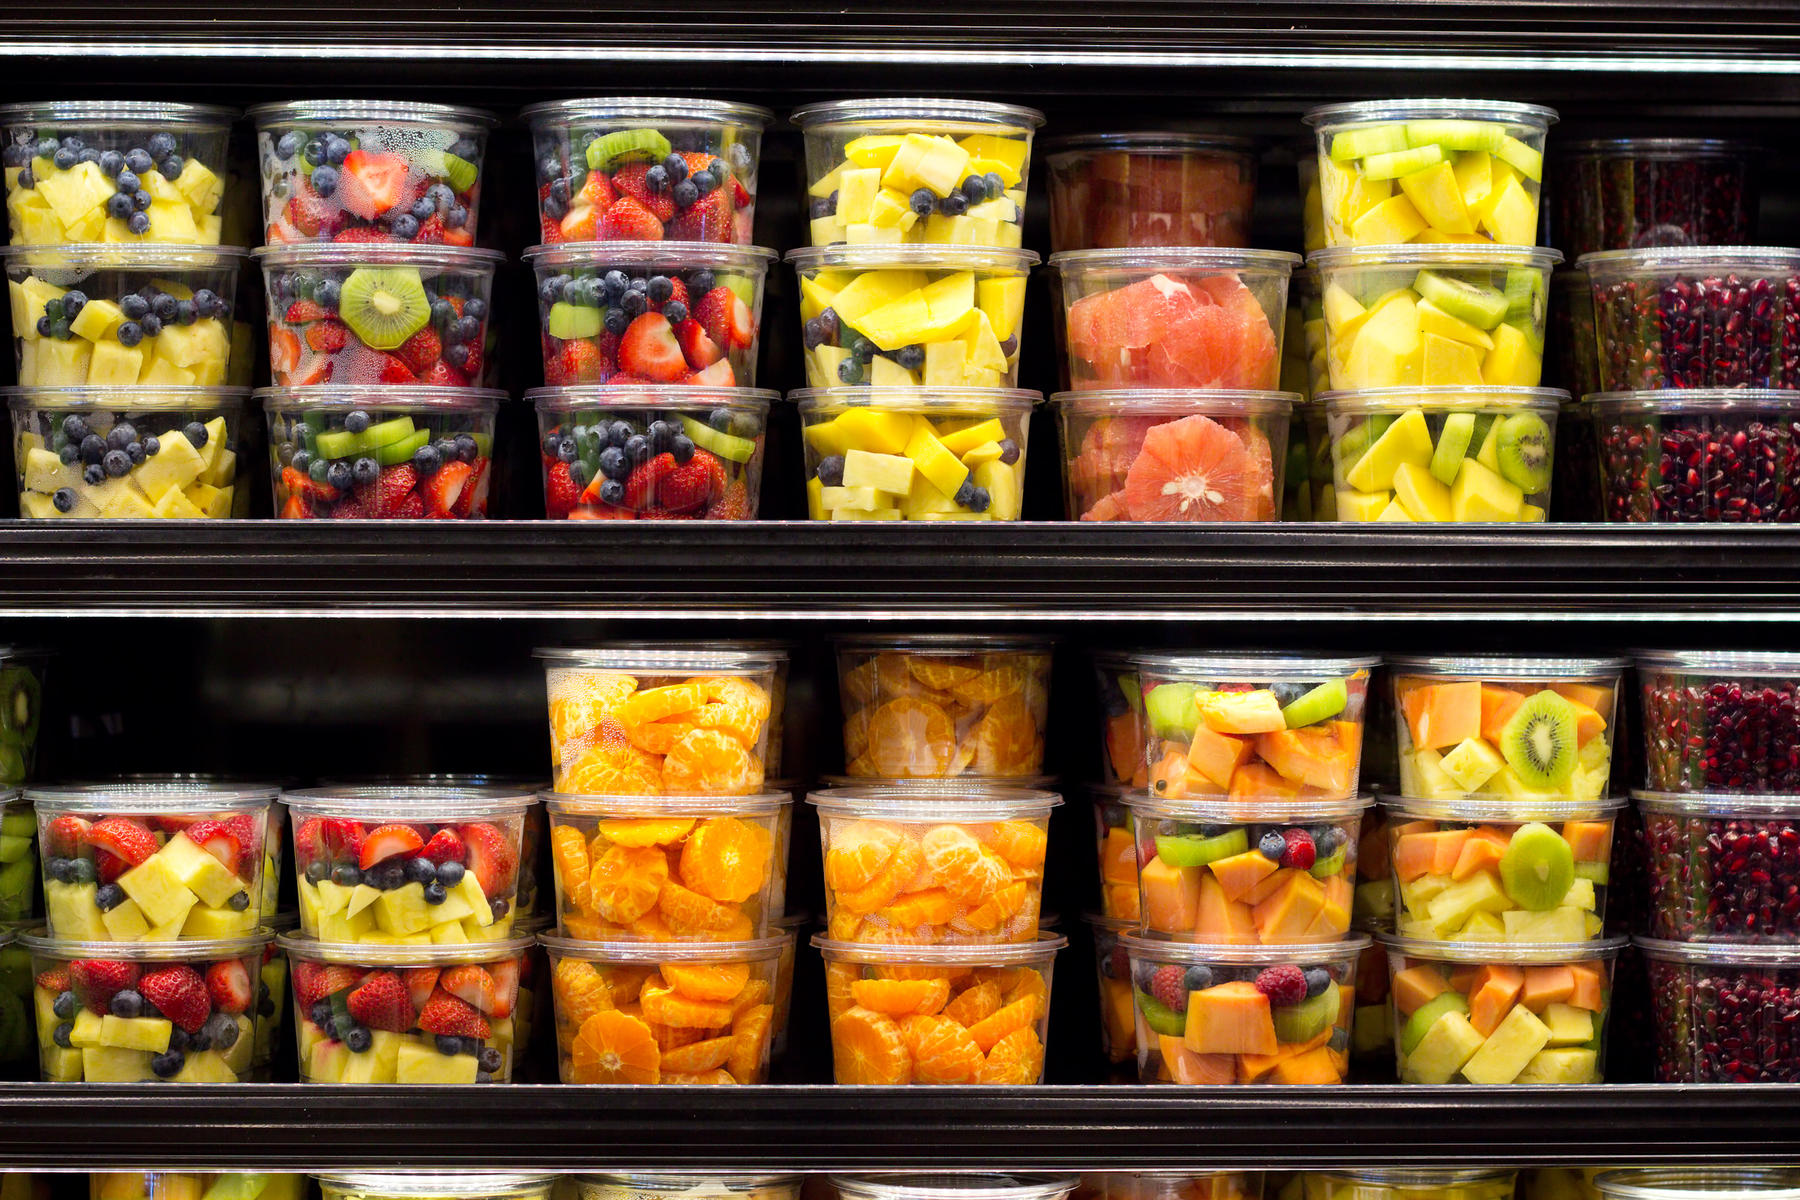 Assortment of Cut Fruit In Plastic Containers